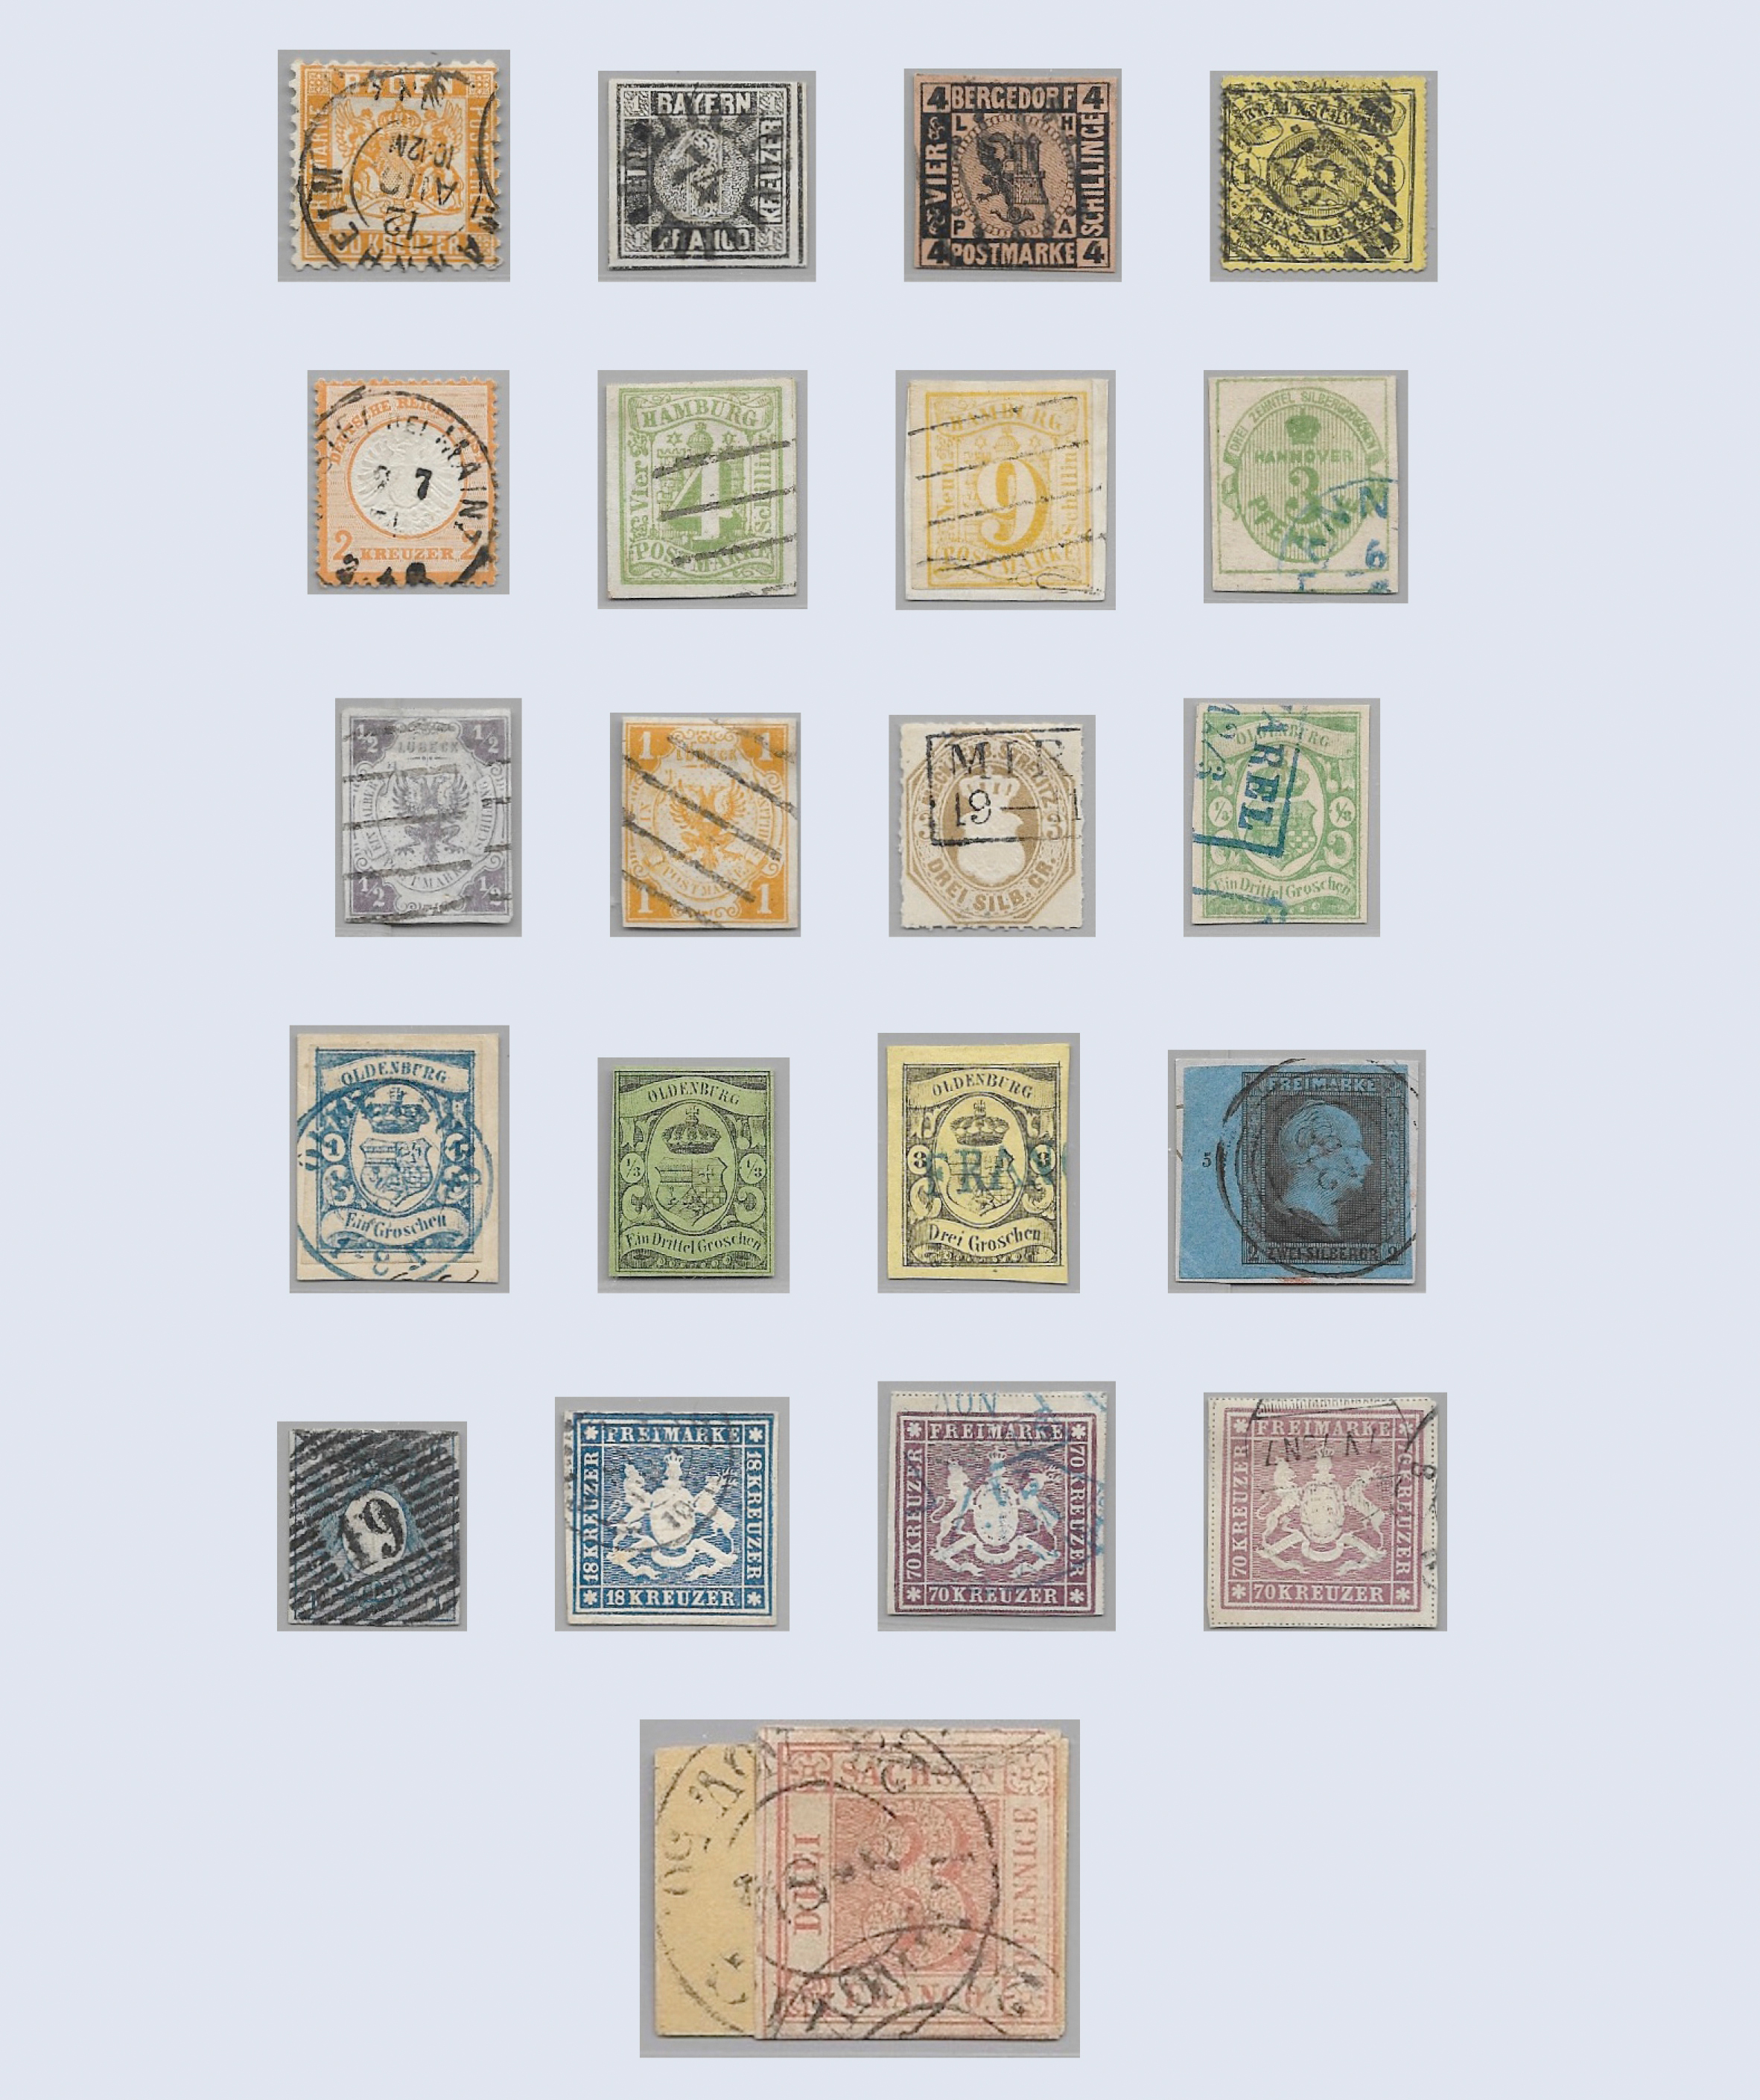 Lot 34001 - nachlässe  -  Auktionshaus Christoph Gärtner GmbH & Co. KG Collections Germany,  Collections Supplement, Surprise boxes #39 Day 7